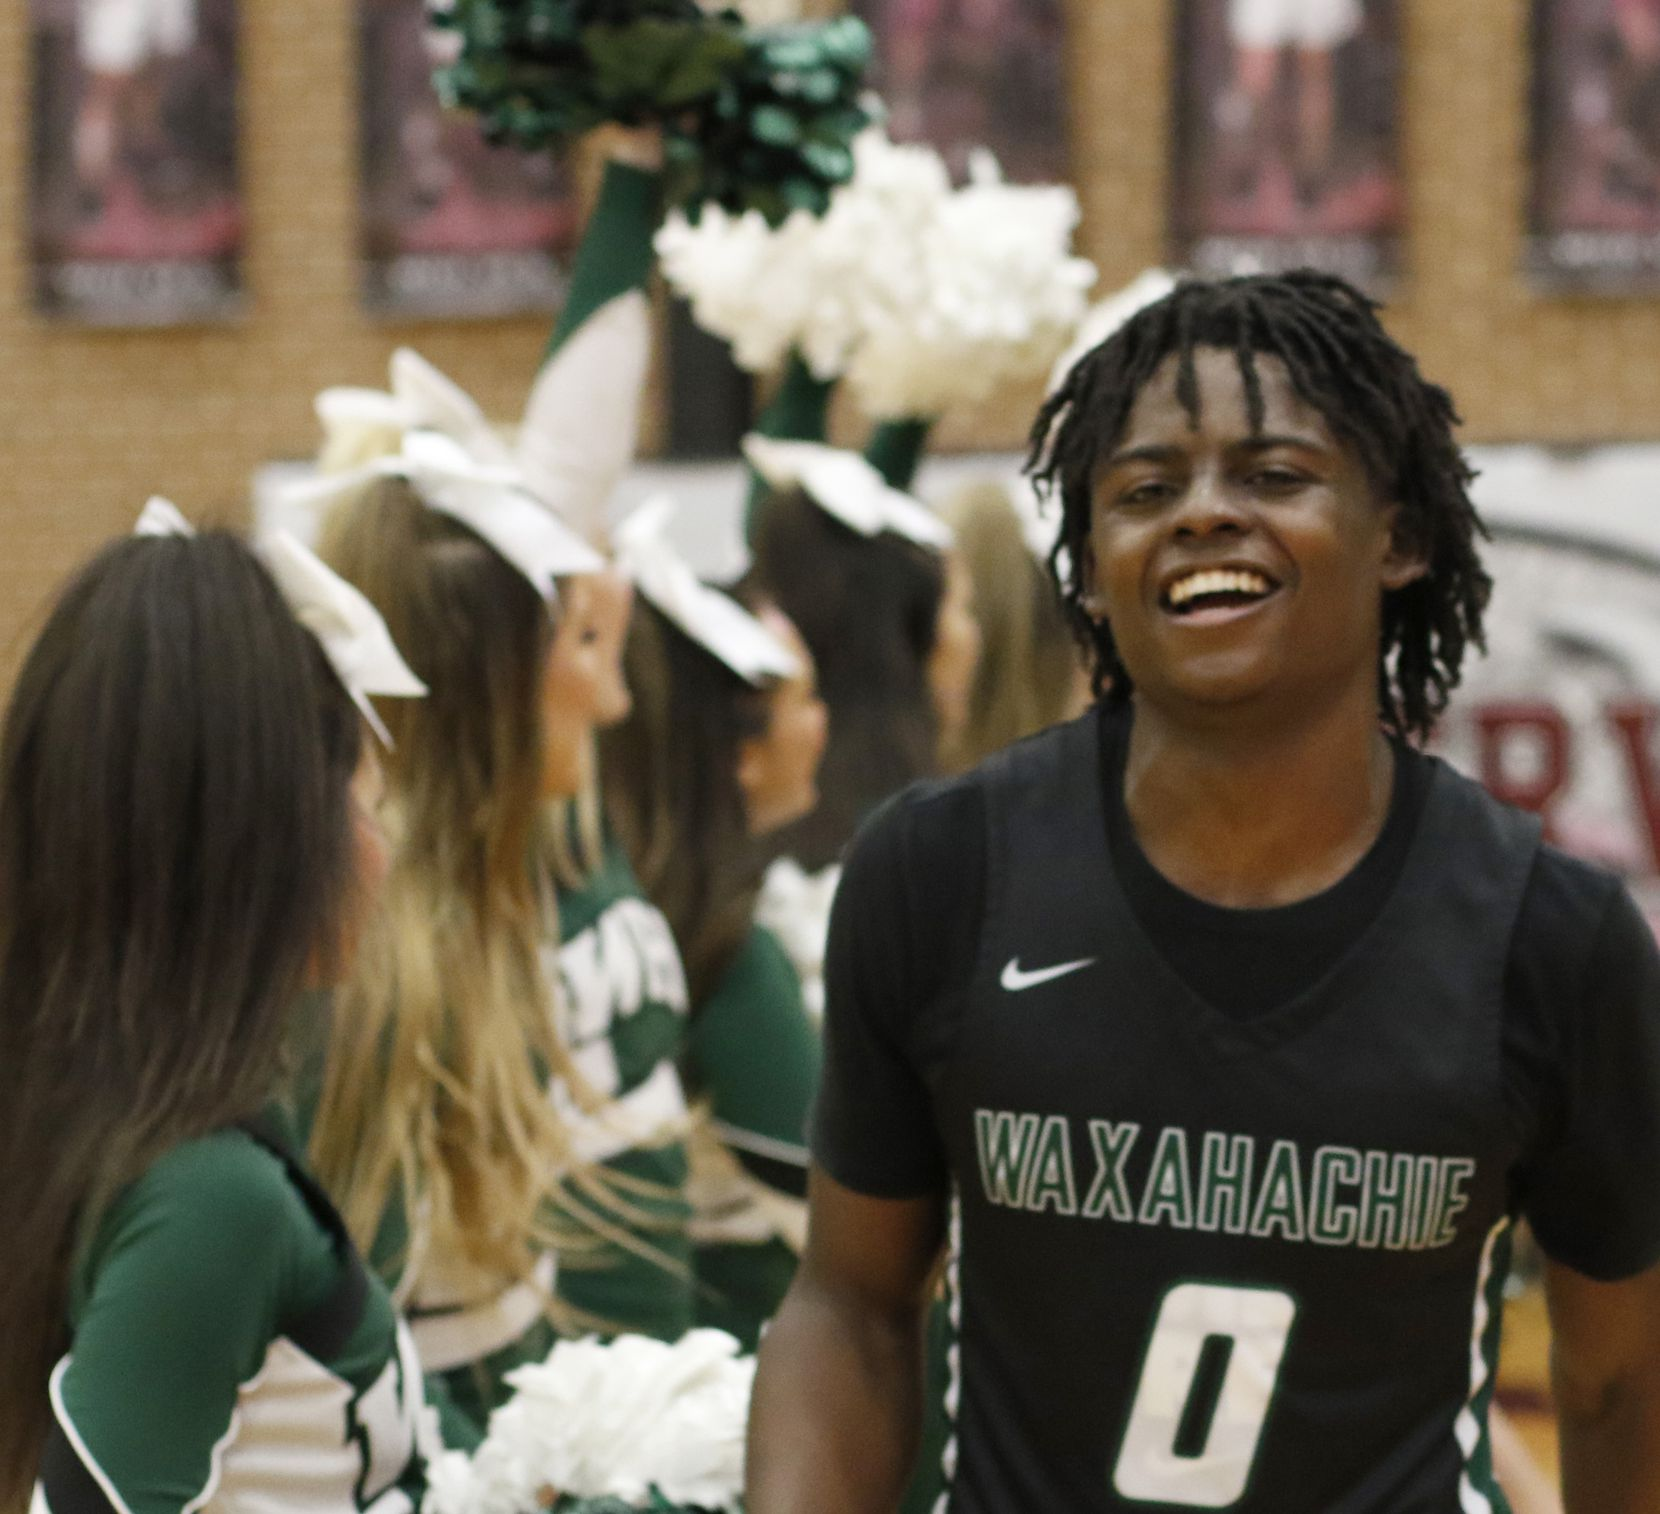 Waxahachie guard BJ Francis (0) was all smiles as he runs through a spirit line of cheerleaders following their 62-50 victory over Coppell to advance. The two teams played their Class 6A area-round boys basketball playoff game at Mansfield Timberview High School in Arlington on February 28, 2020.